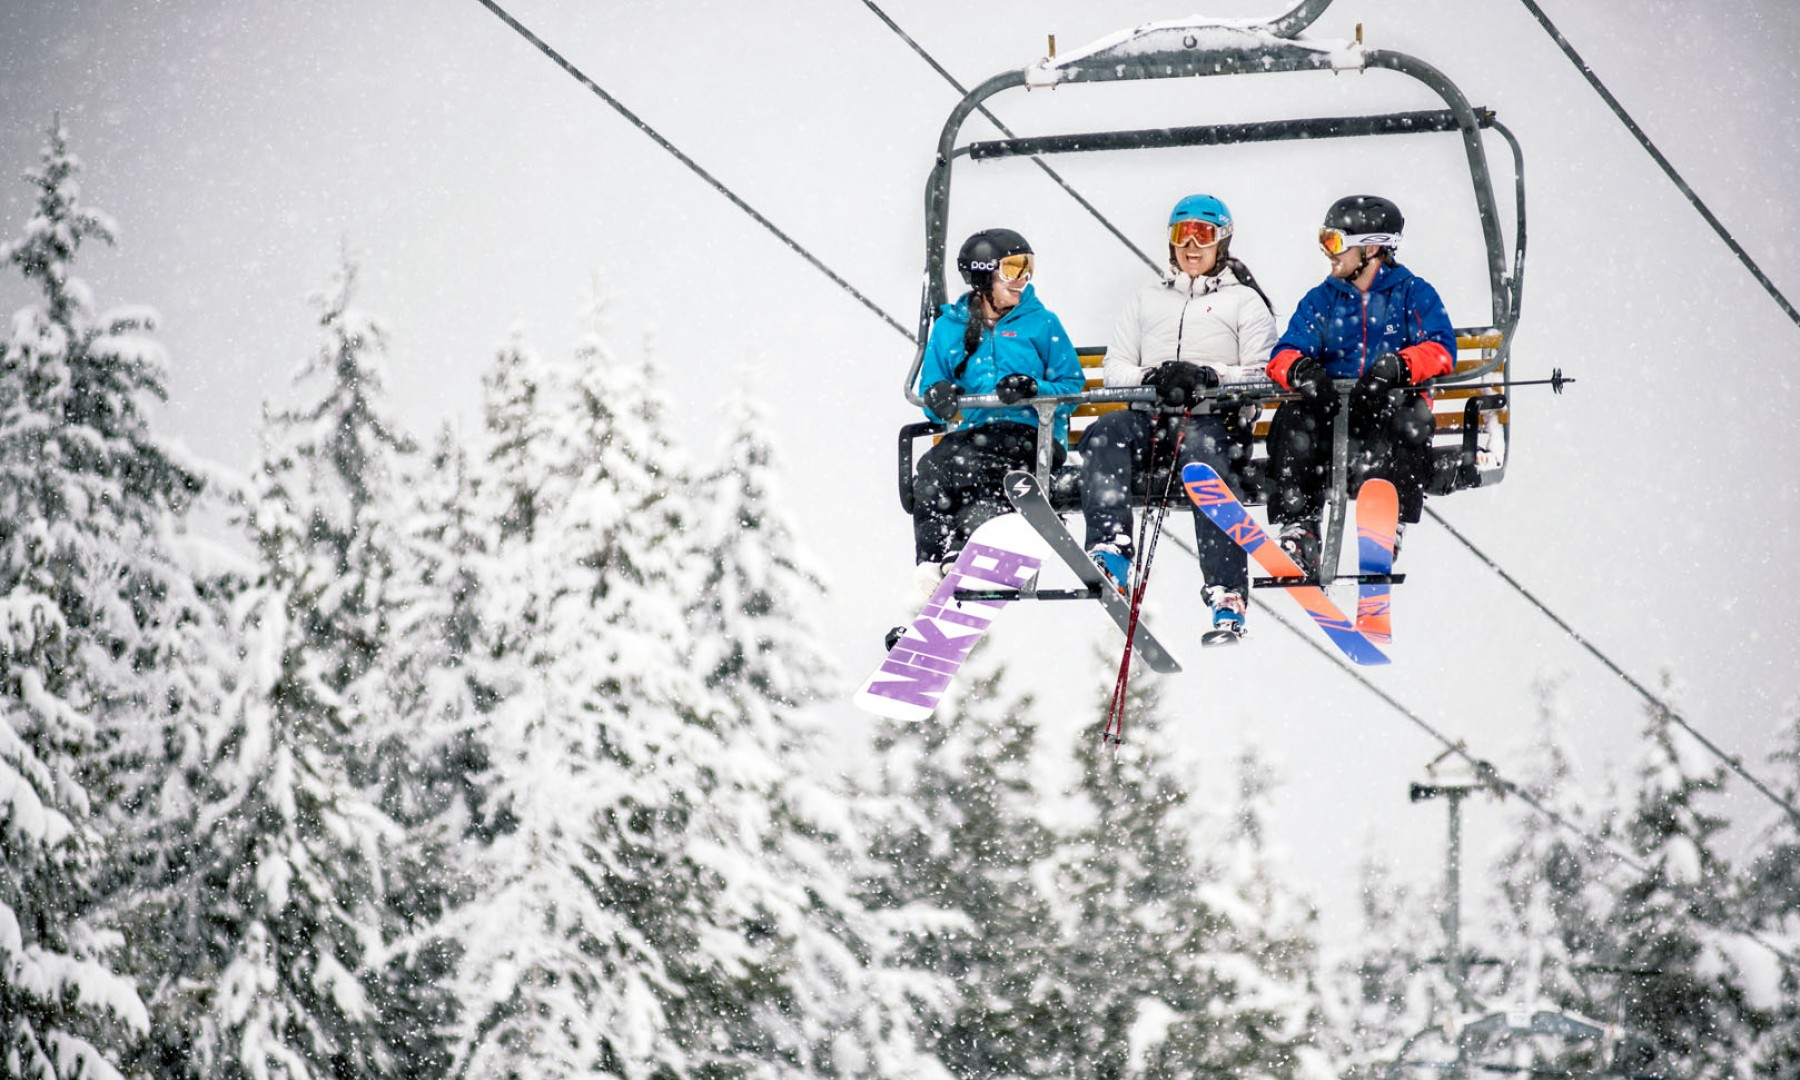 Christmas Village Ski Lift For Sale.Skiing Snowboarding Panorama Mountain Resort